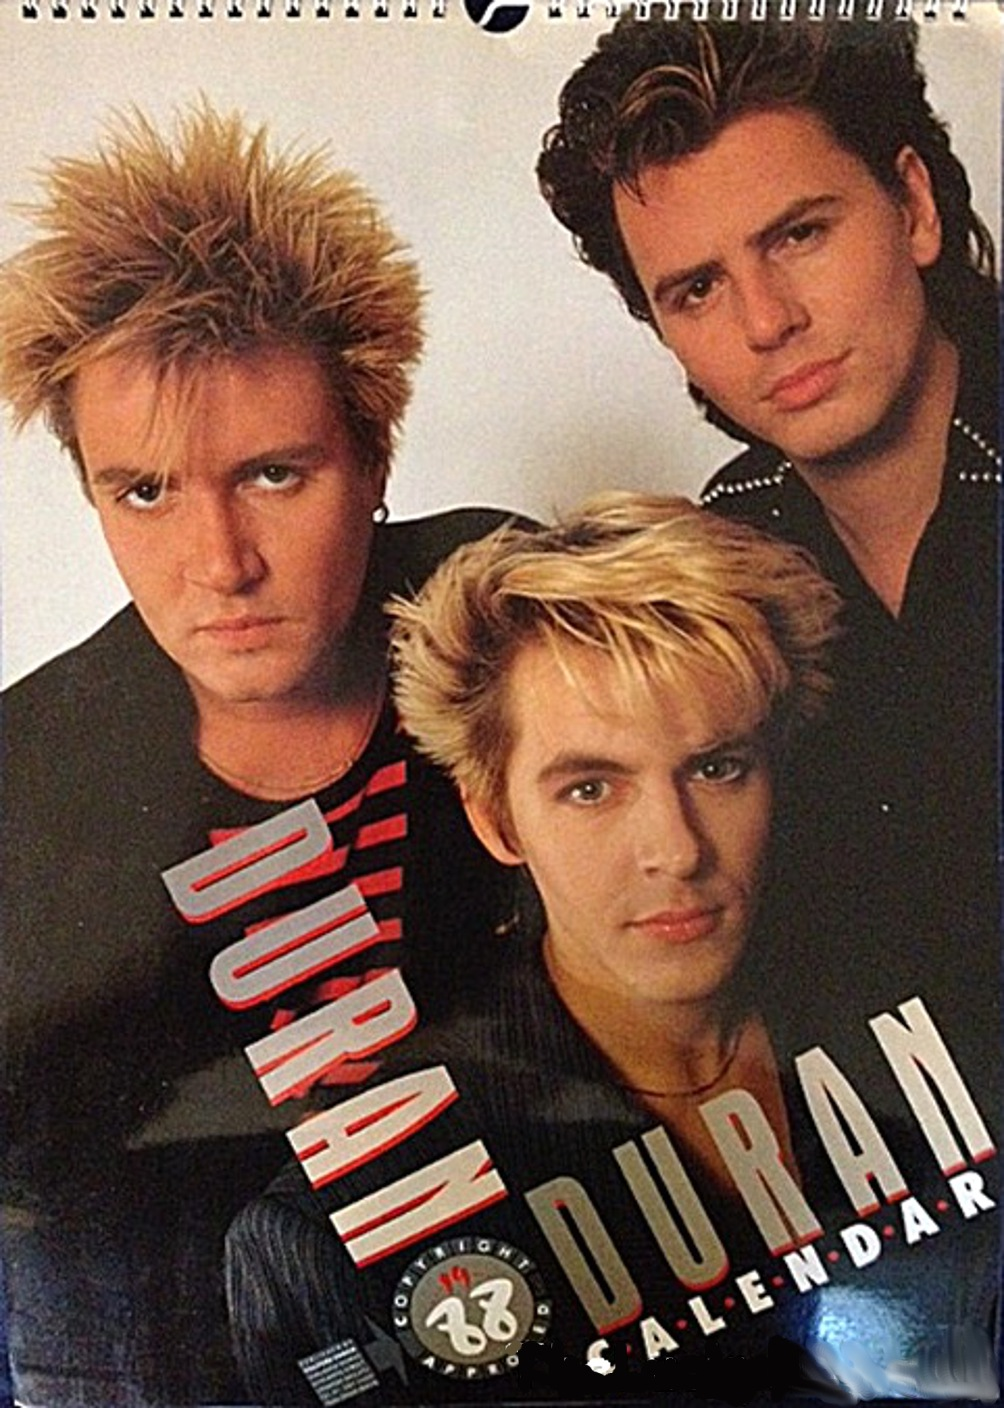 DURAN_DURAN_OFFICIAL_1988_WALL_CALENDAR_16.5_by_11.5_wikipedia